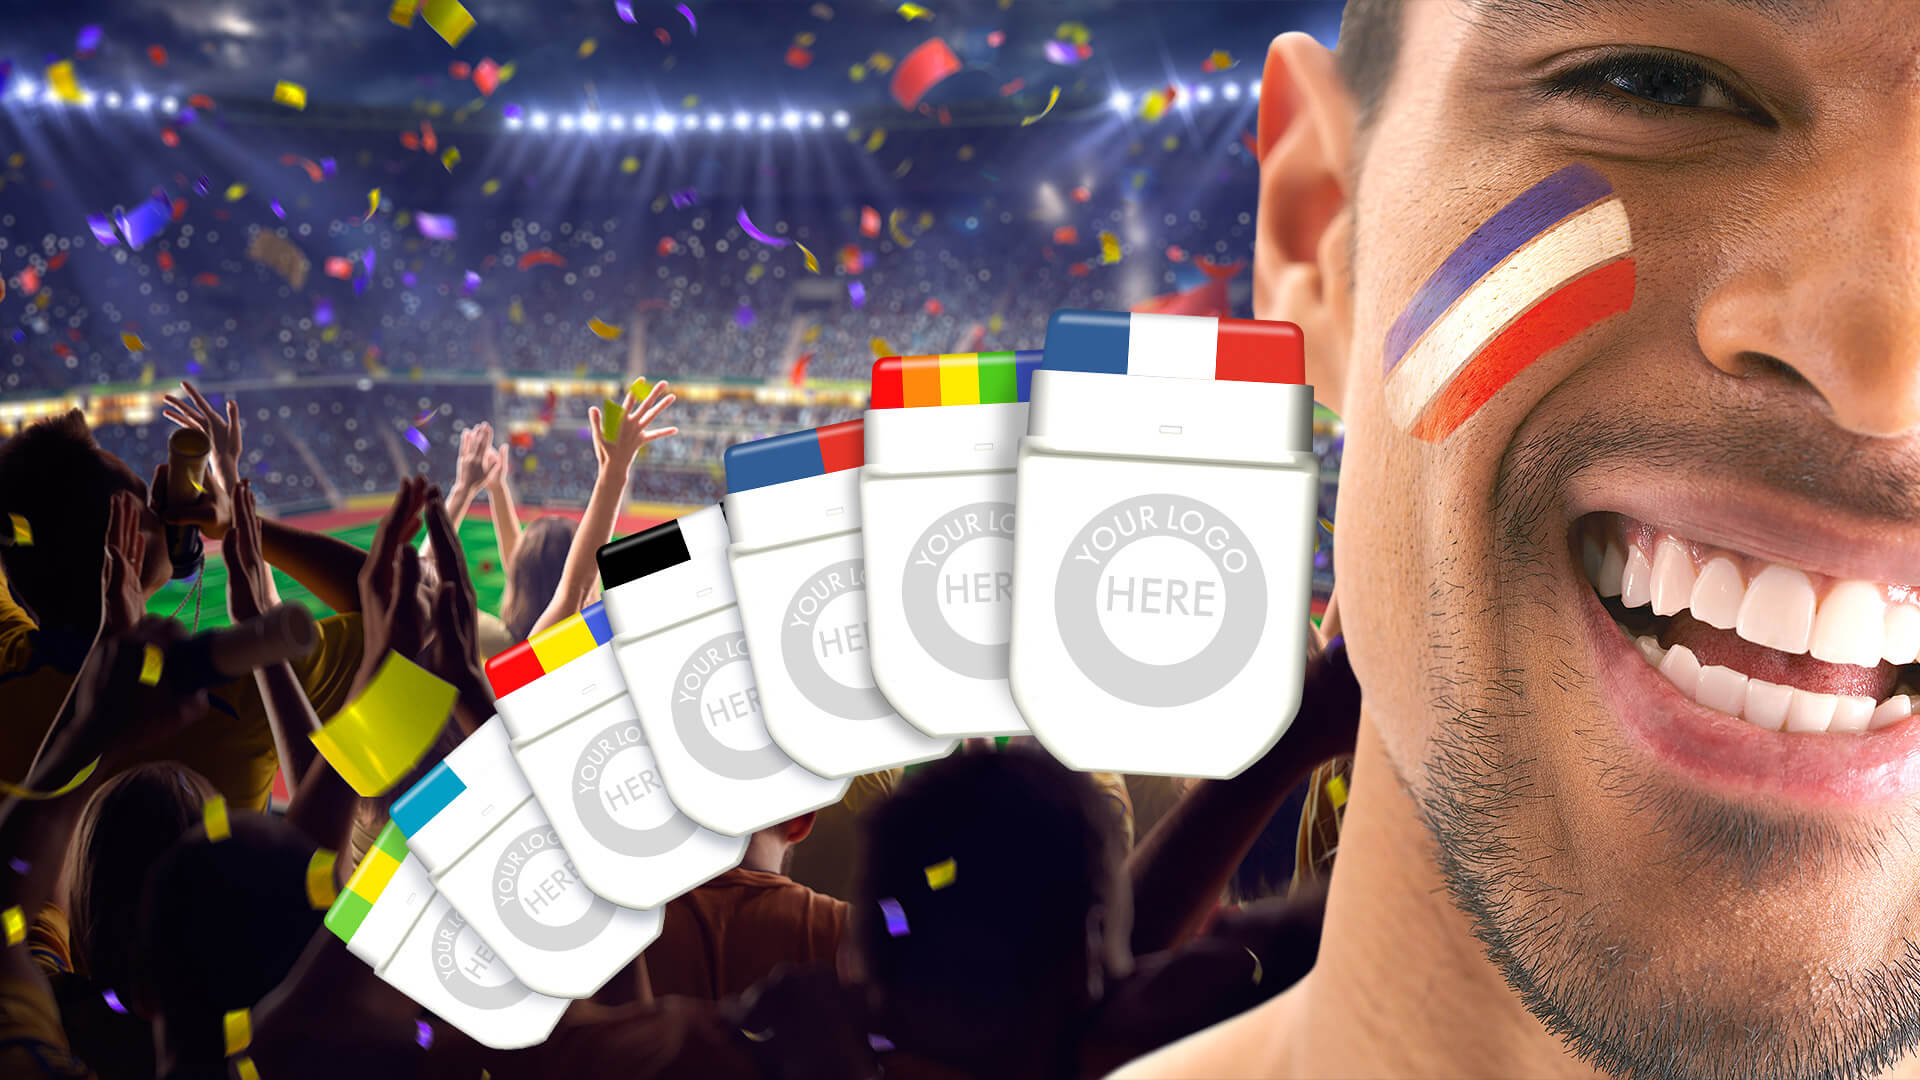 Maquillage pour supporters sportifs